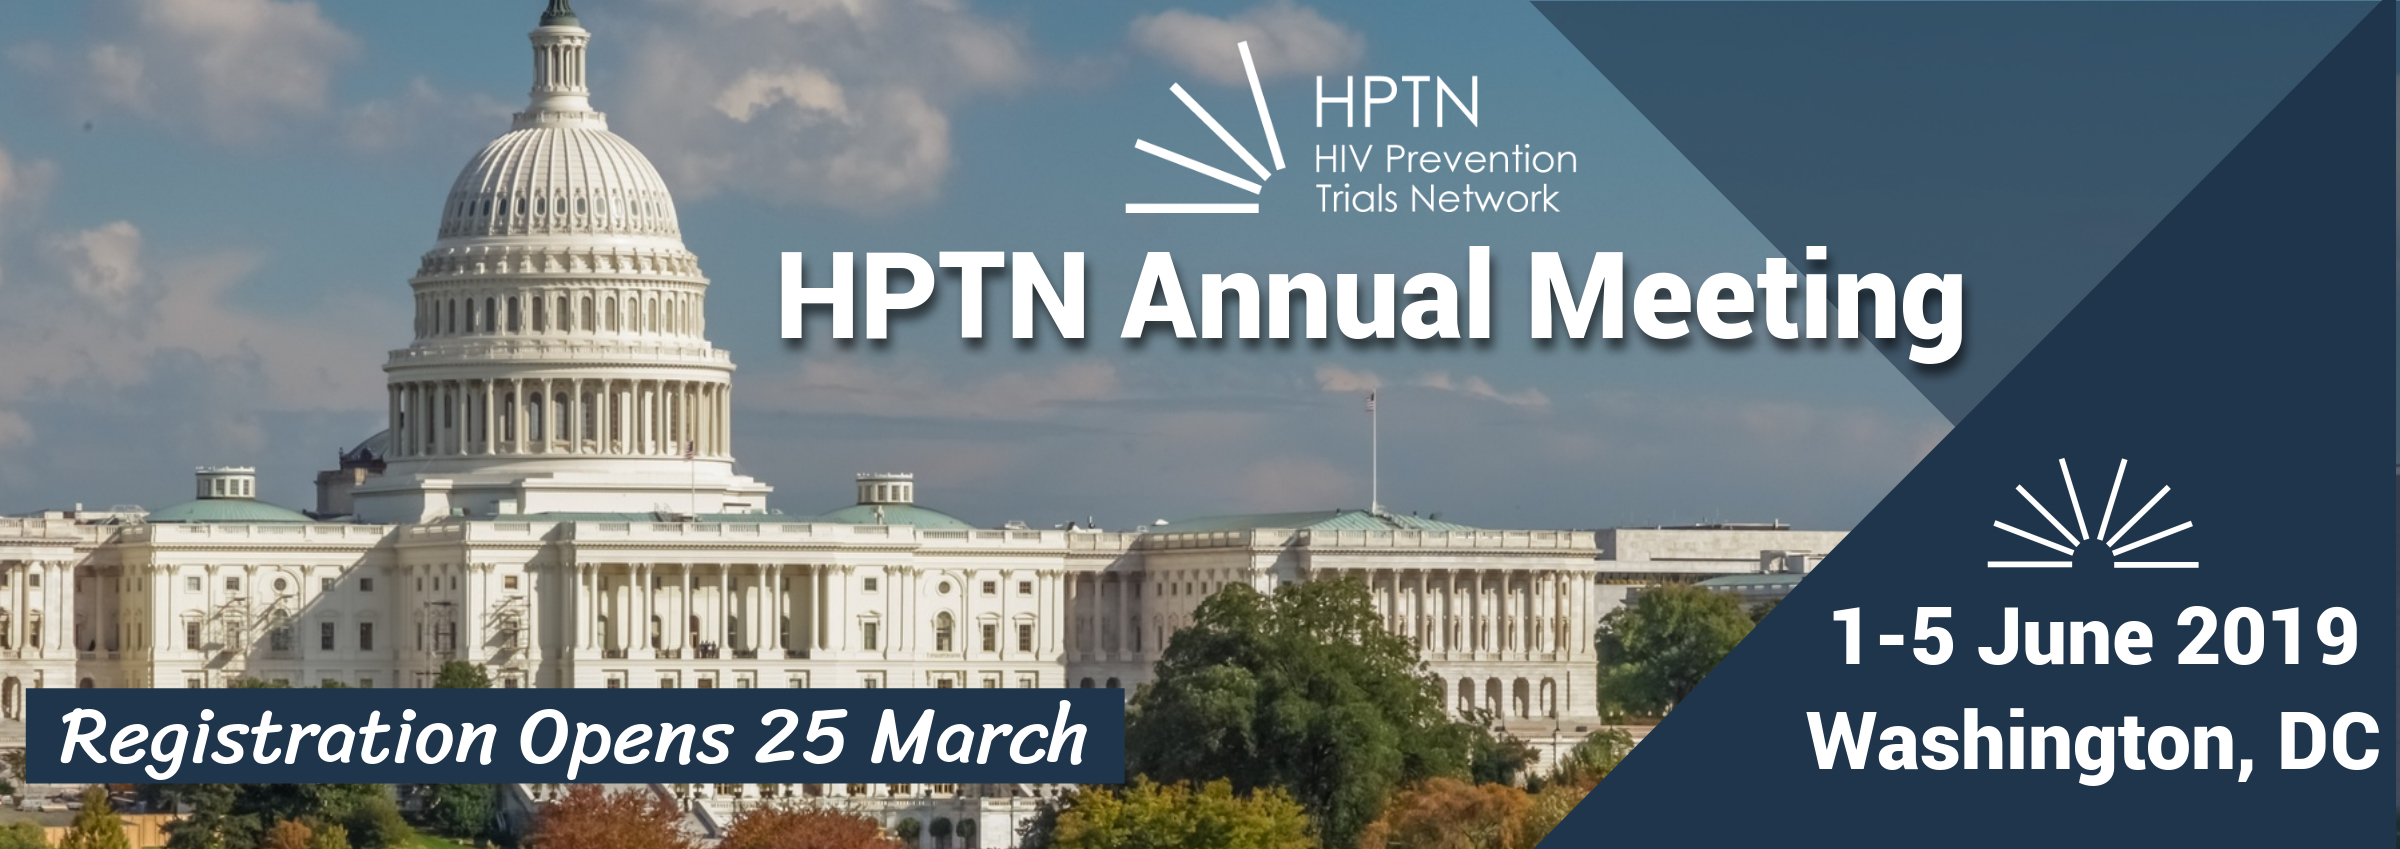 2019 HPTN Annual Meeting | The HIV Prevention Trials Network